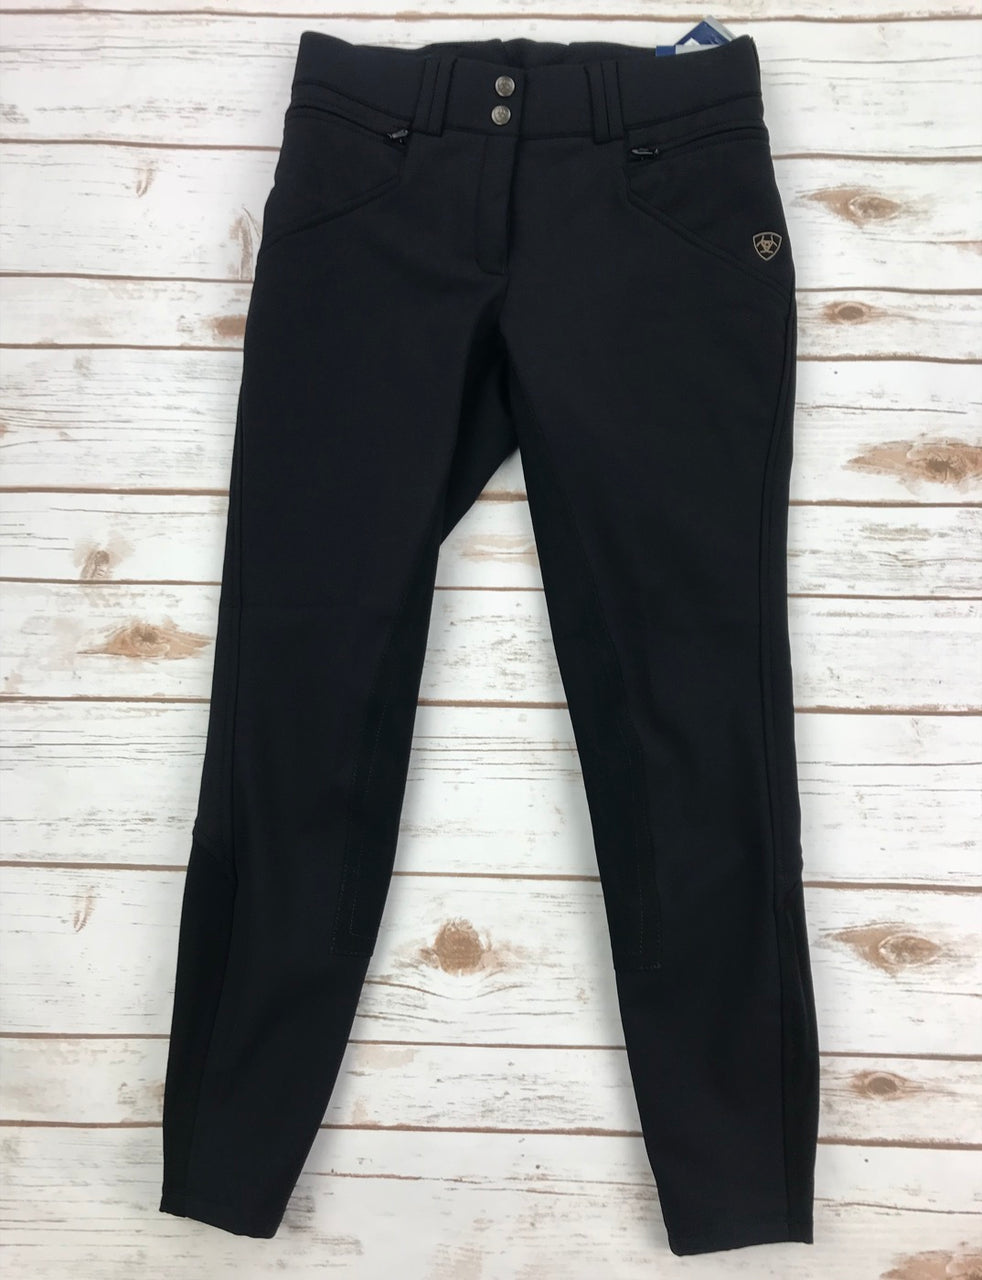 Ariat Mikelli Softshell Full Seat Breeches in Black - Women's 22R